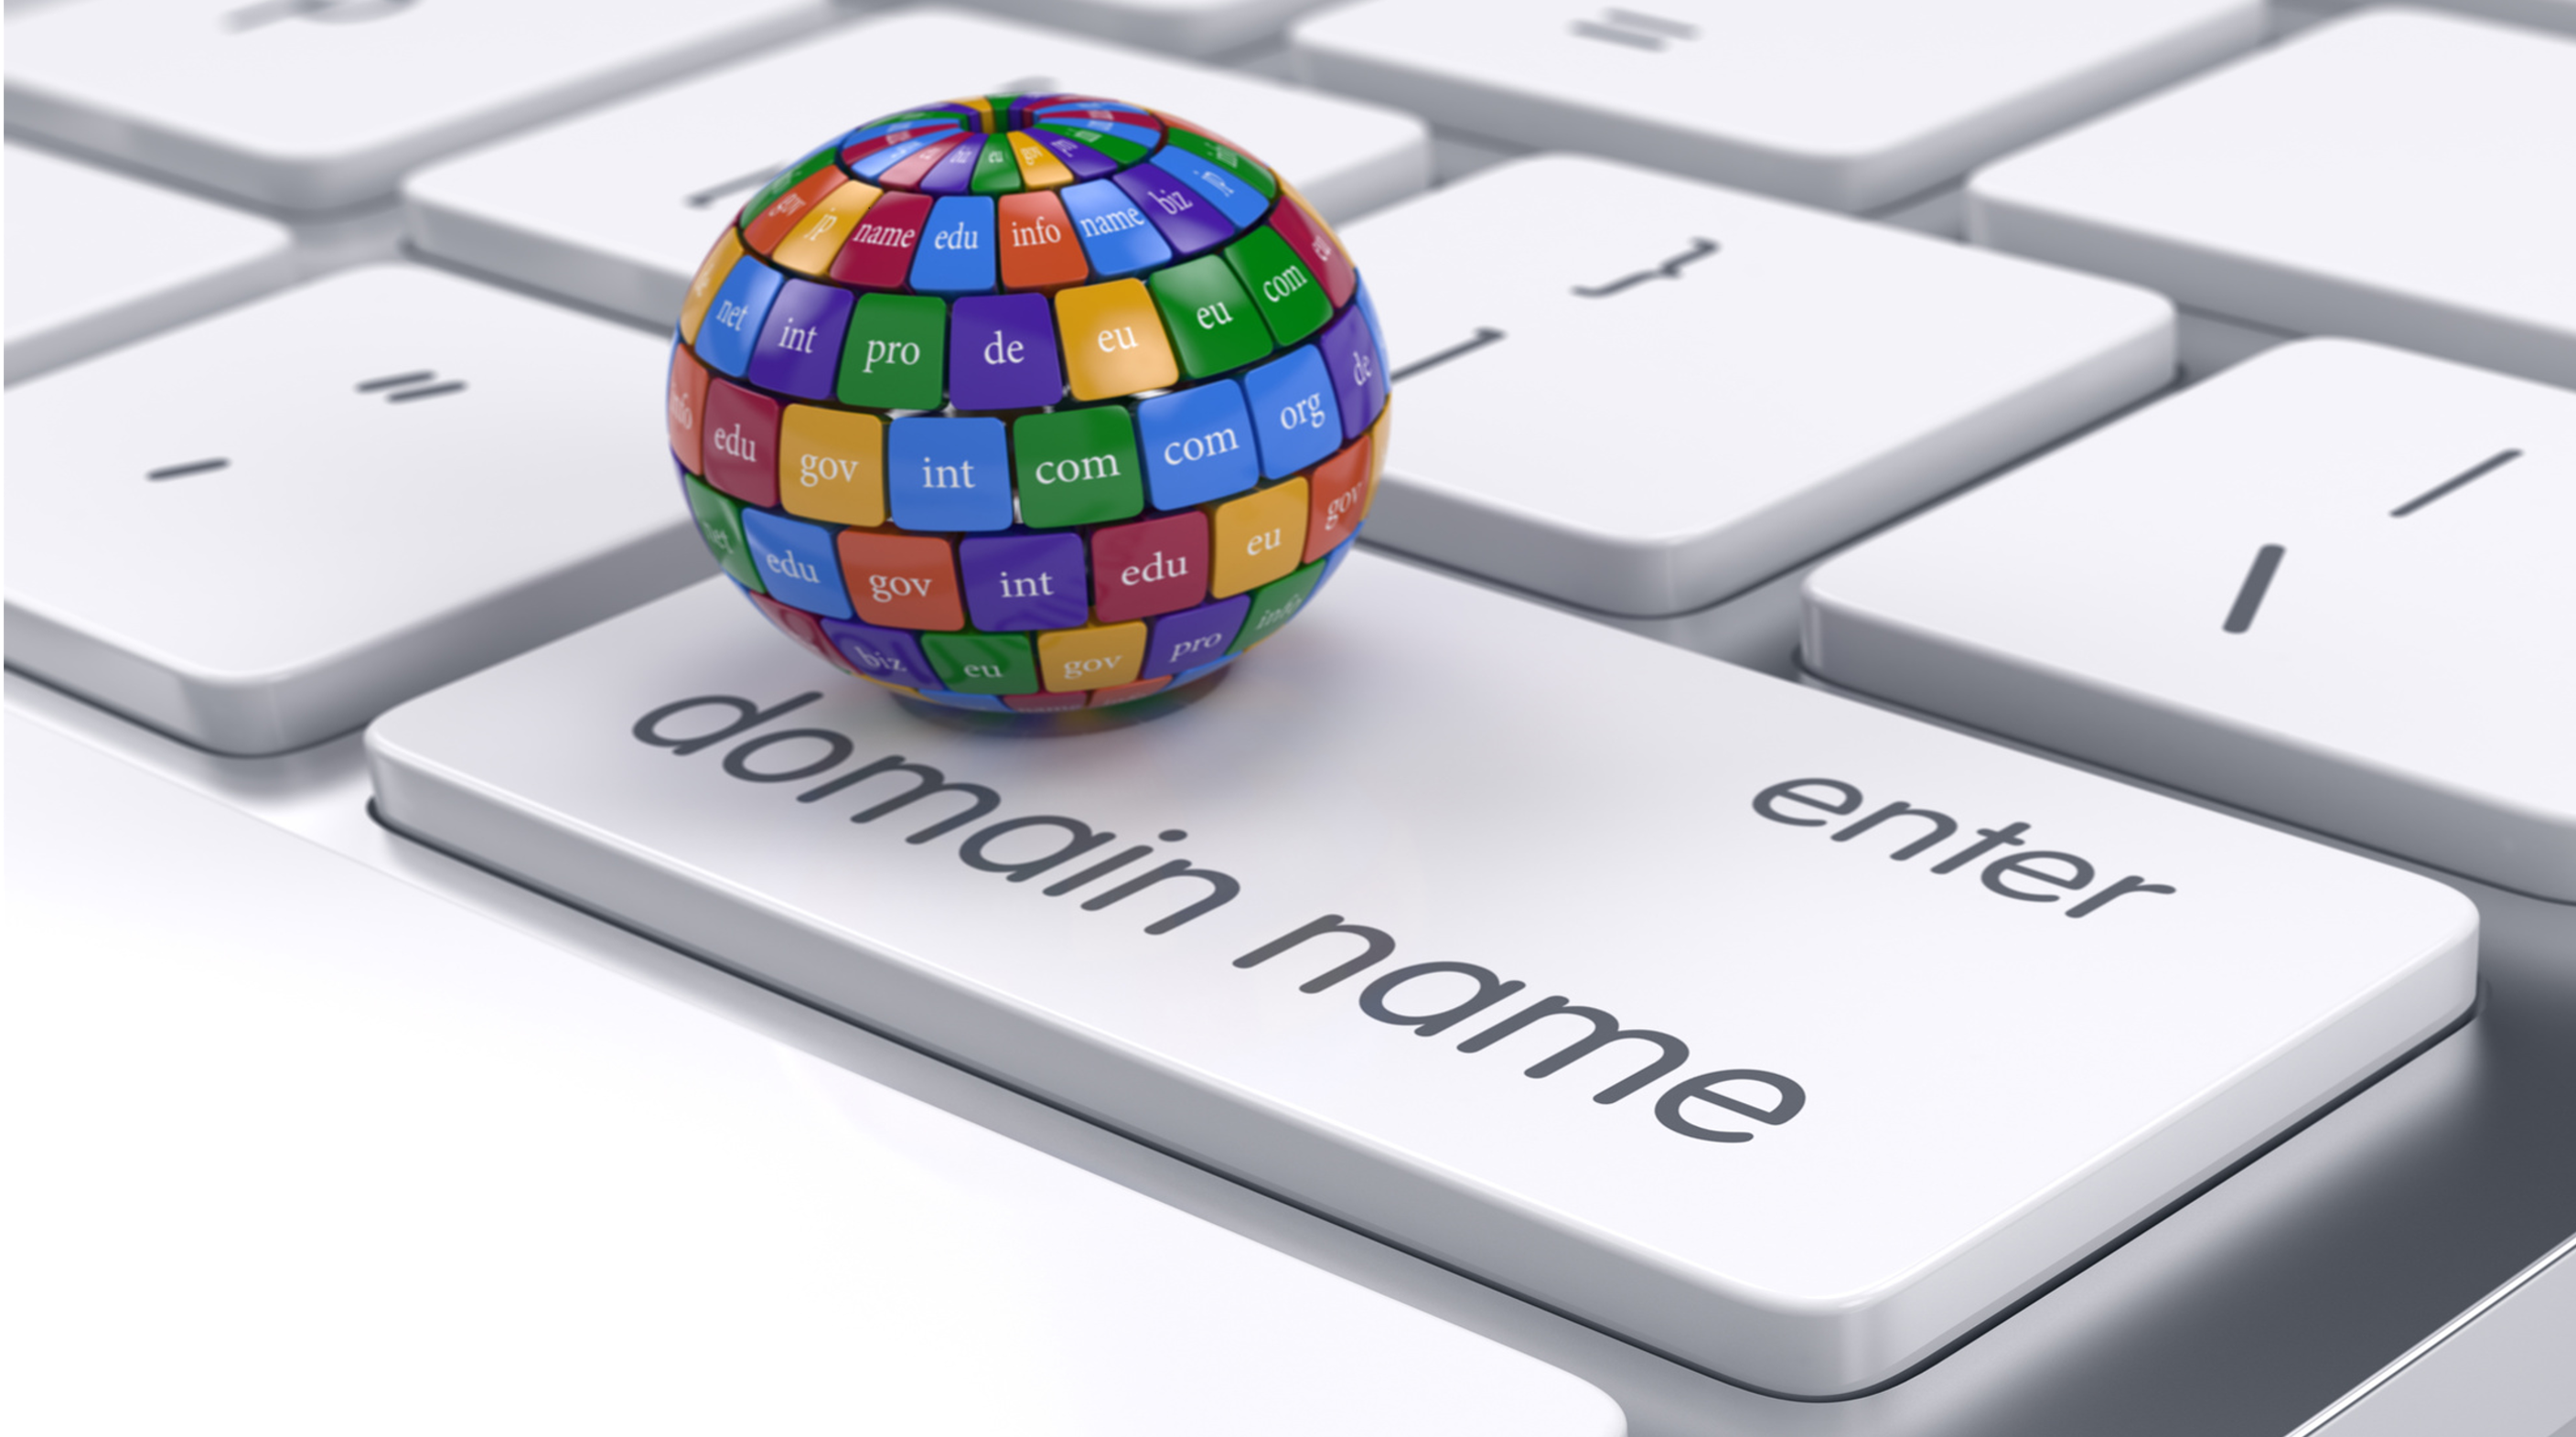 Creating A Domain For The First Time? Don't Make These 5 Registration Mistakes